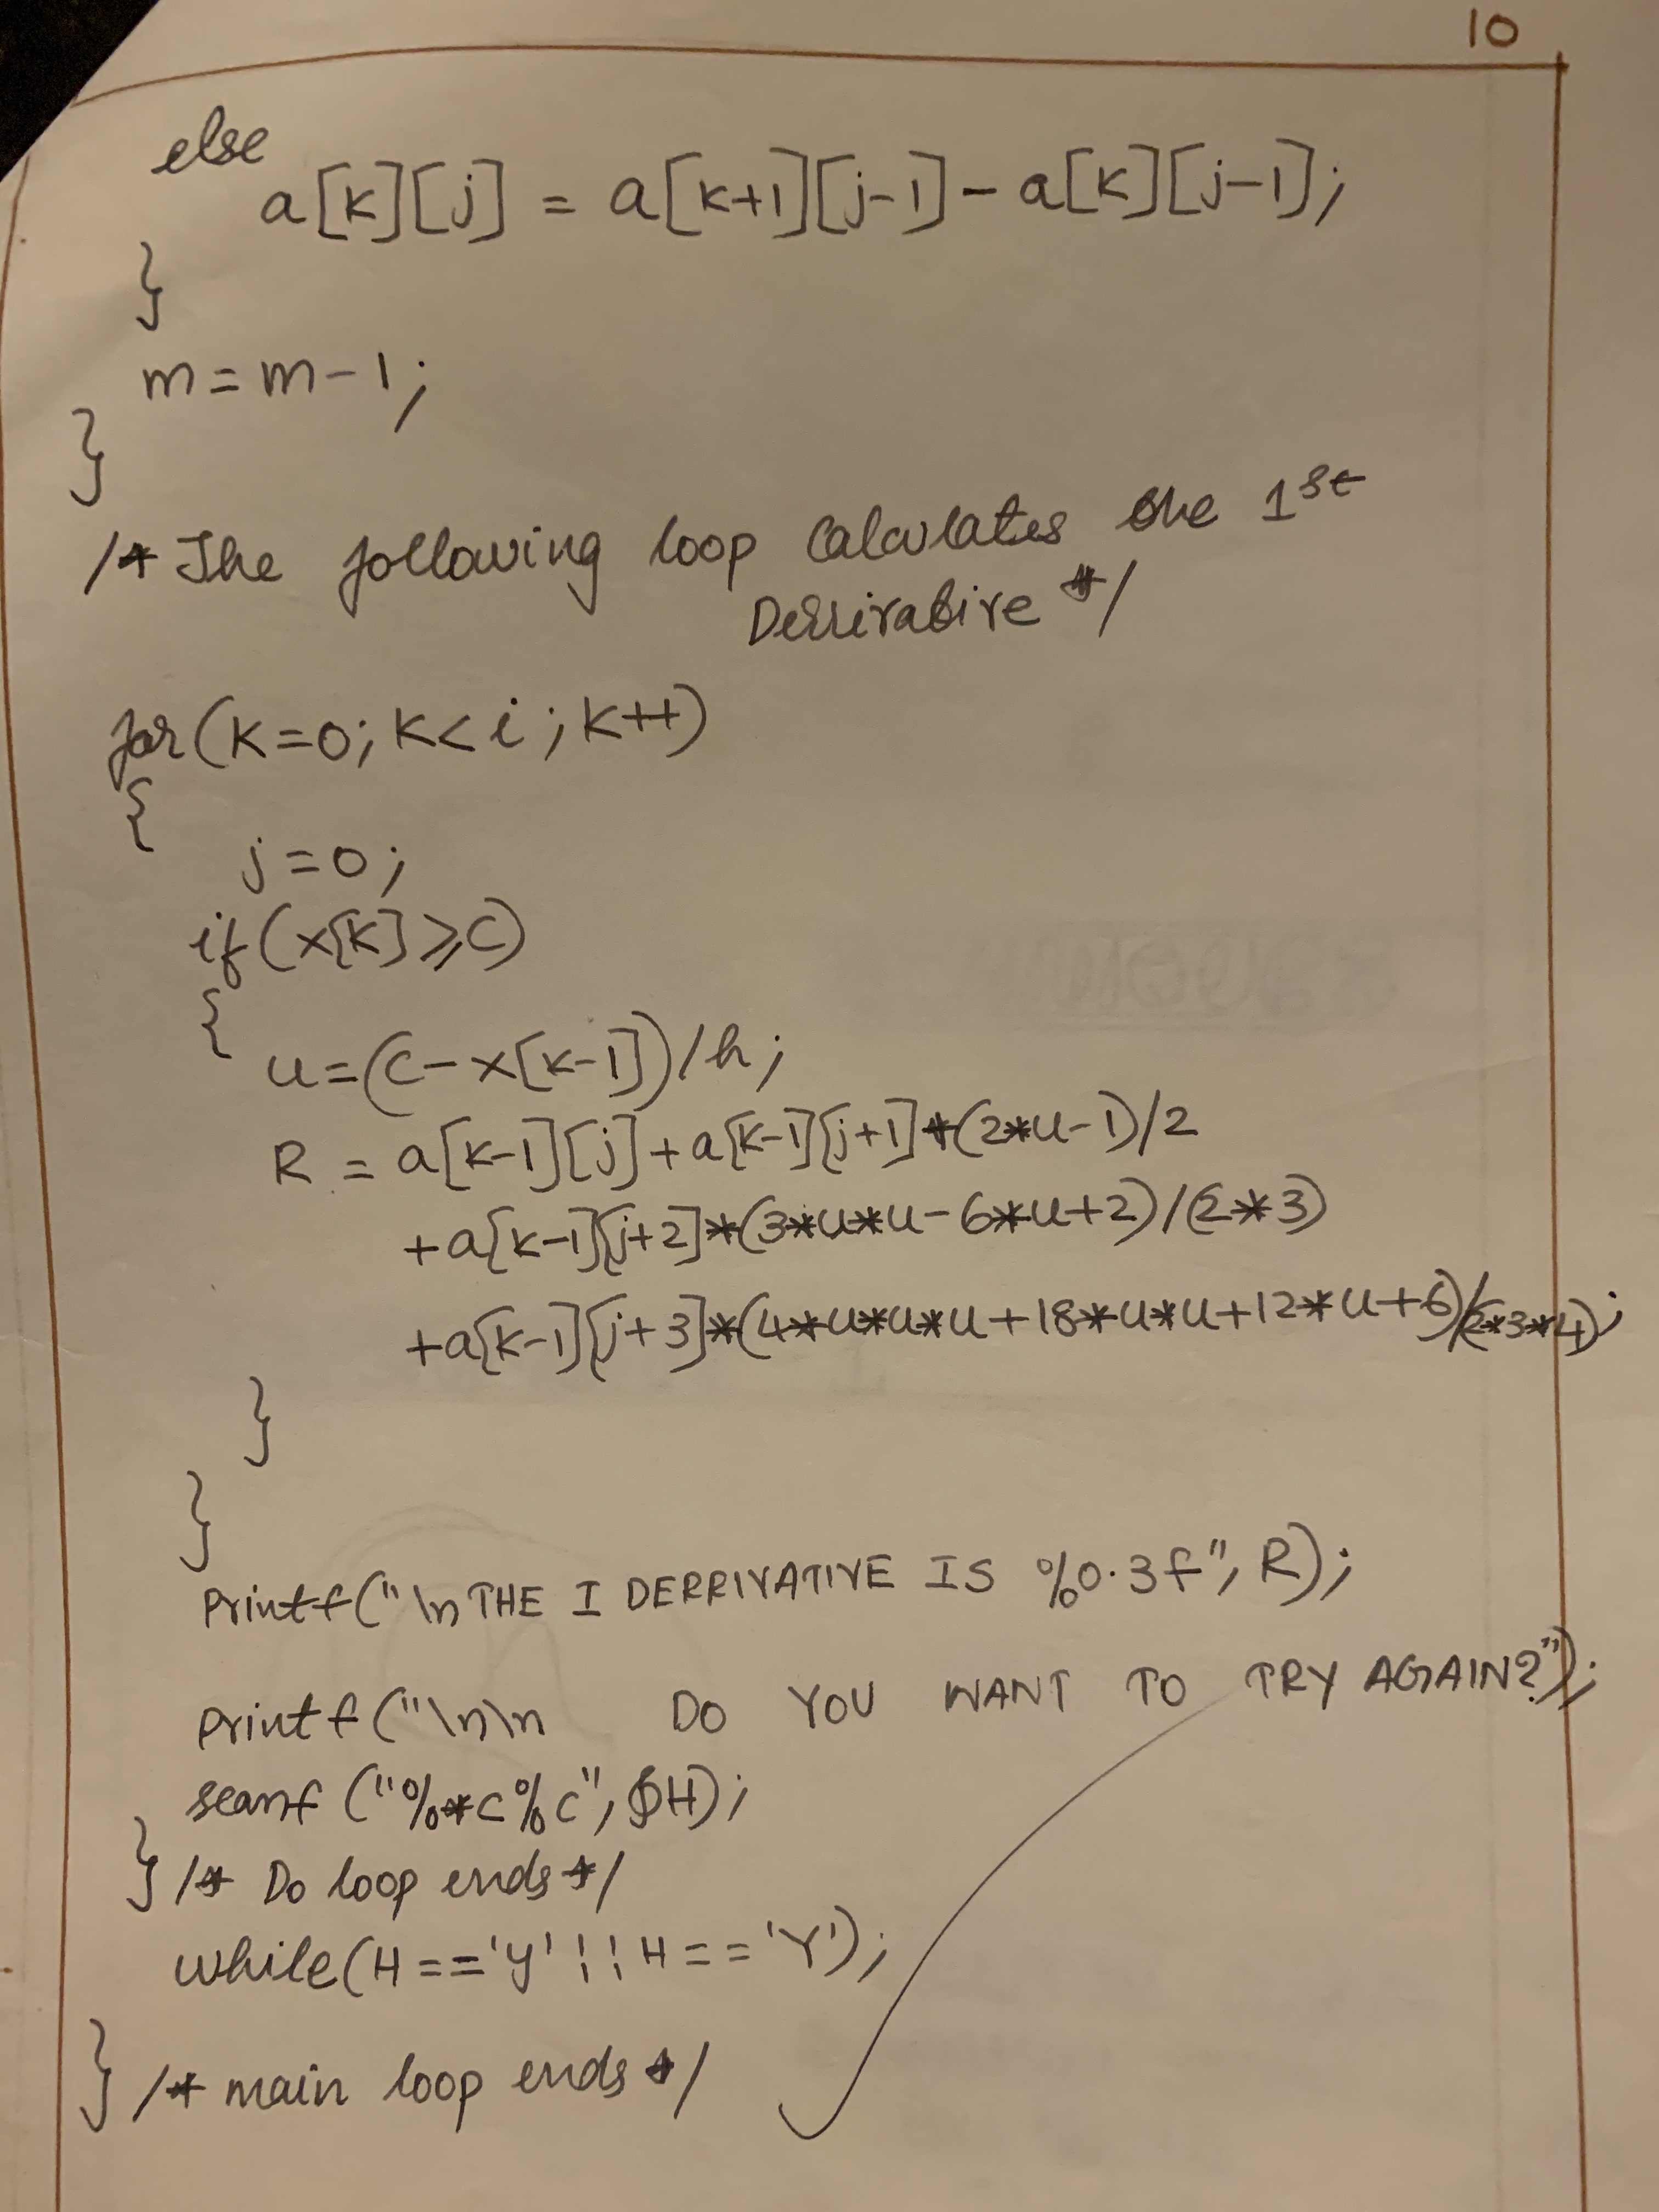 C program to evaluate the 1st derivative of a function at any given point